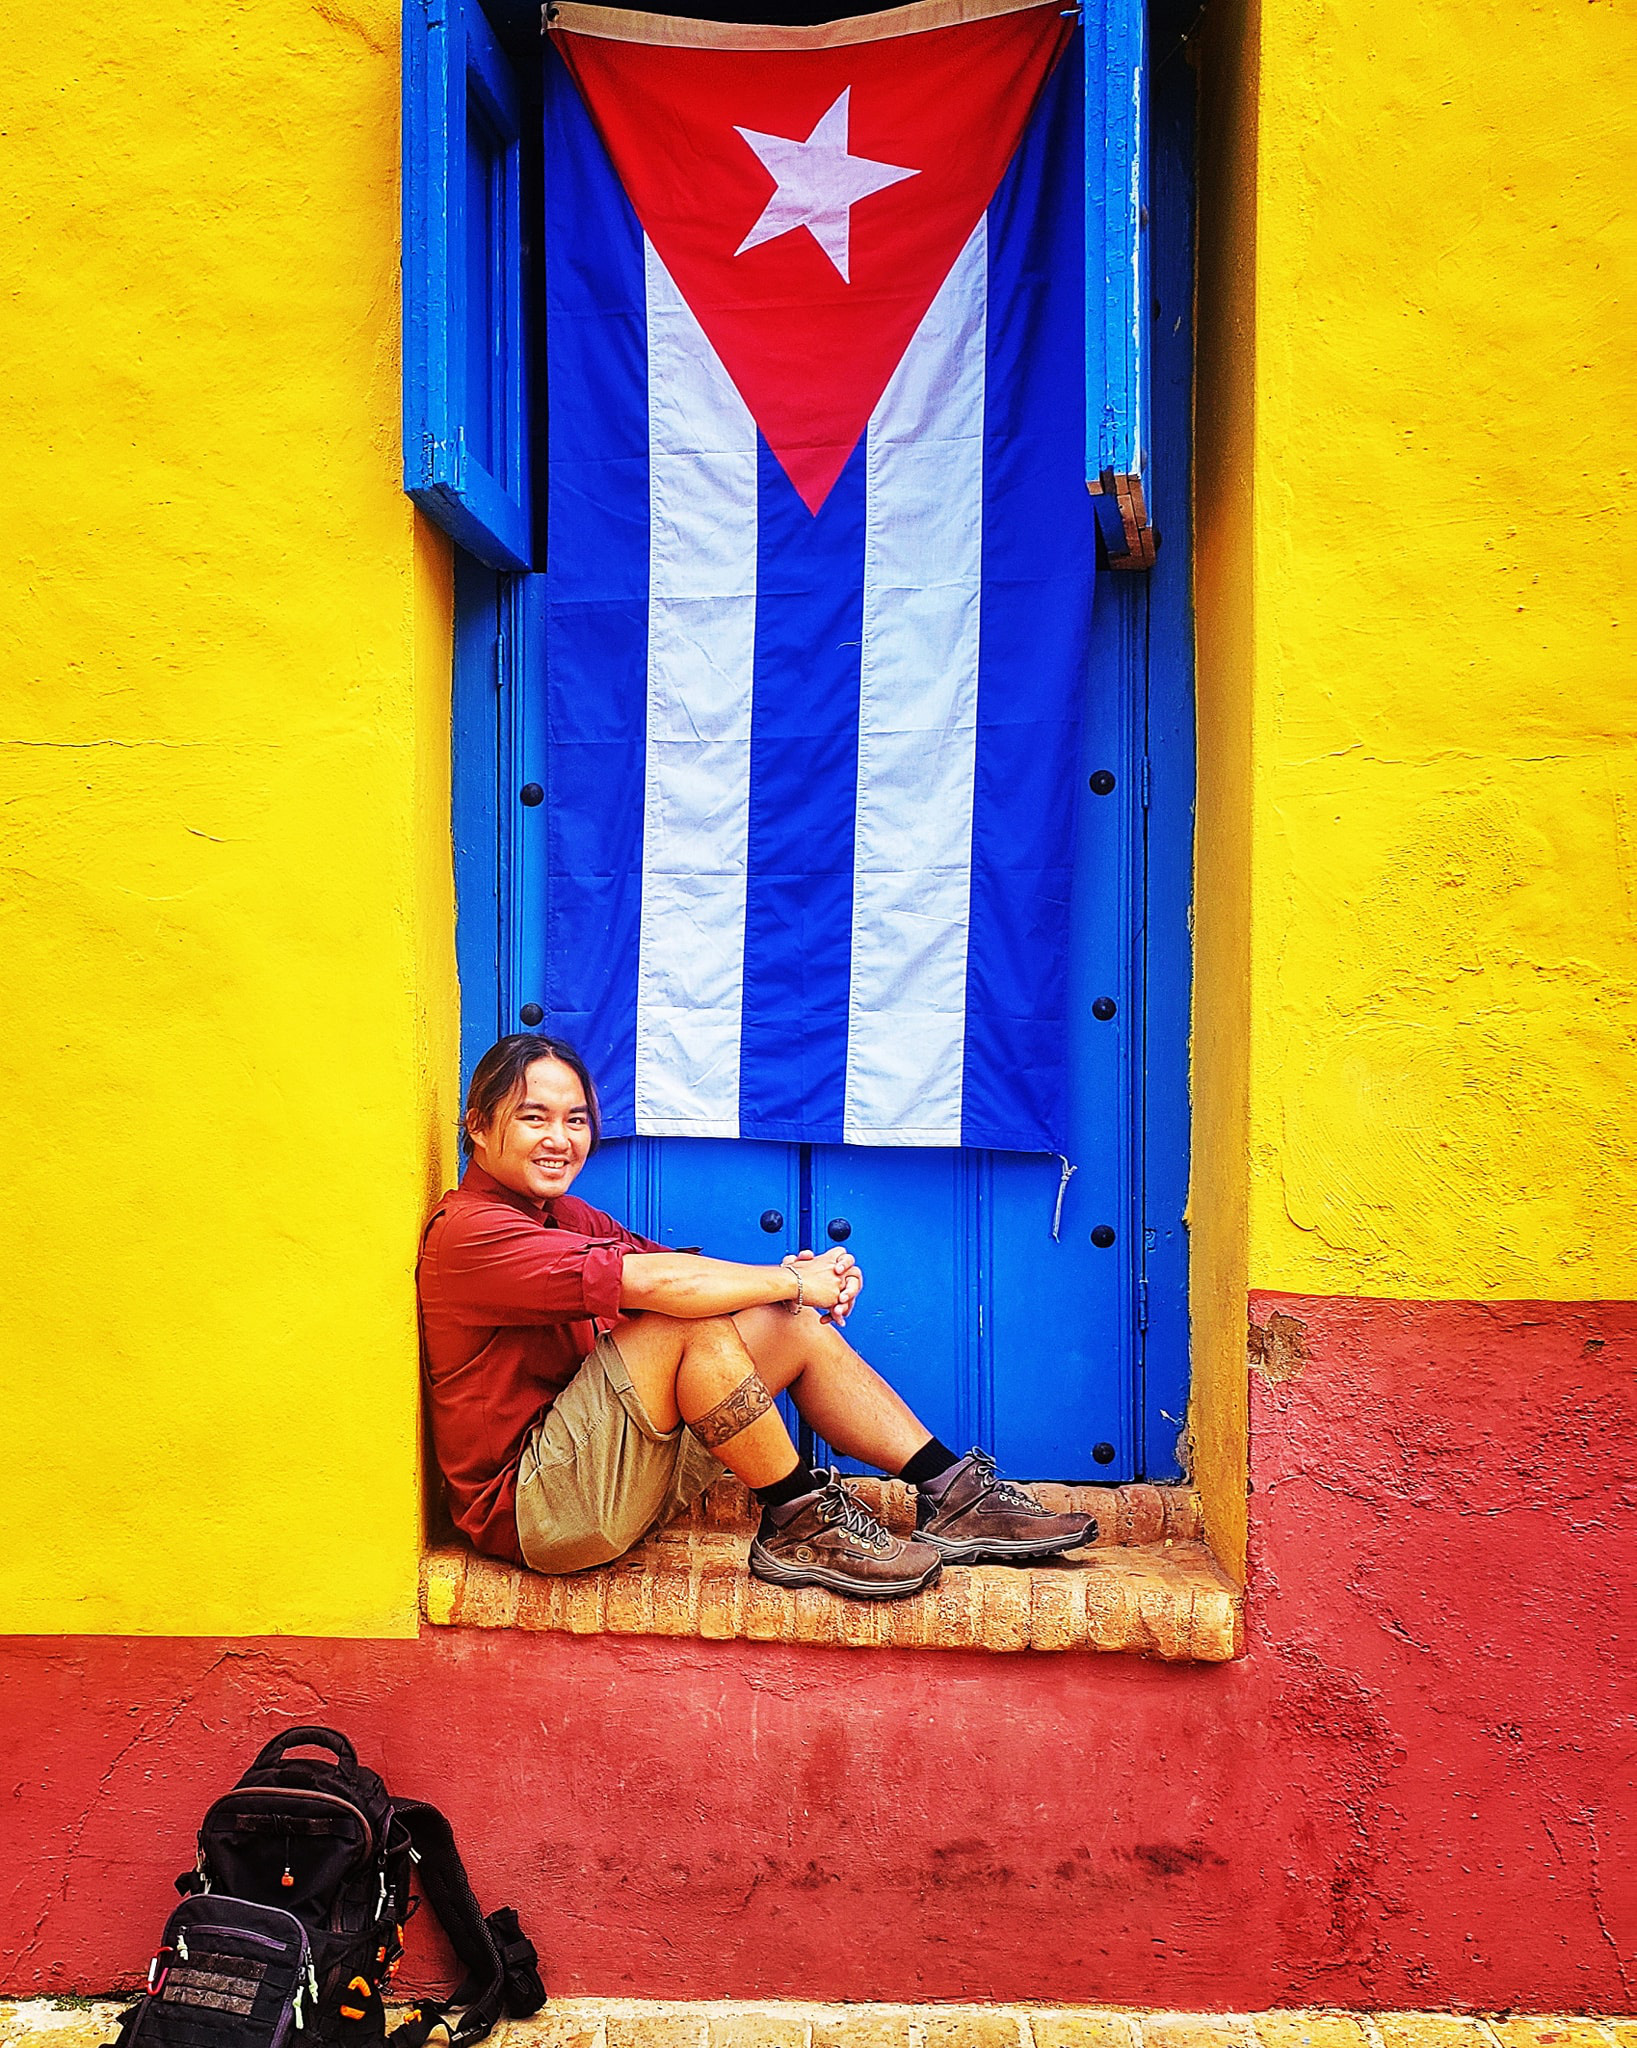 Vietnamese globetrotter Tran Dang Dang Khoa poses for a photo against the backdrop of a Cuban flag in Cuba in a photo posted to his verified Facebook account.